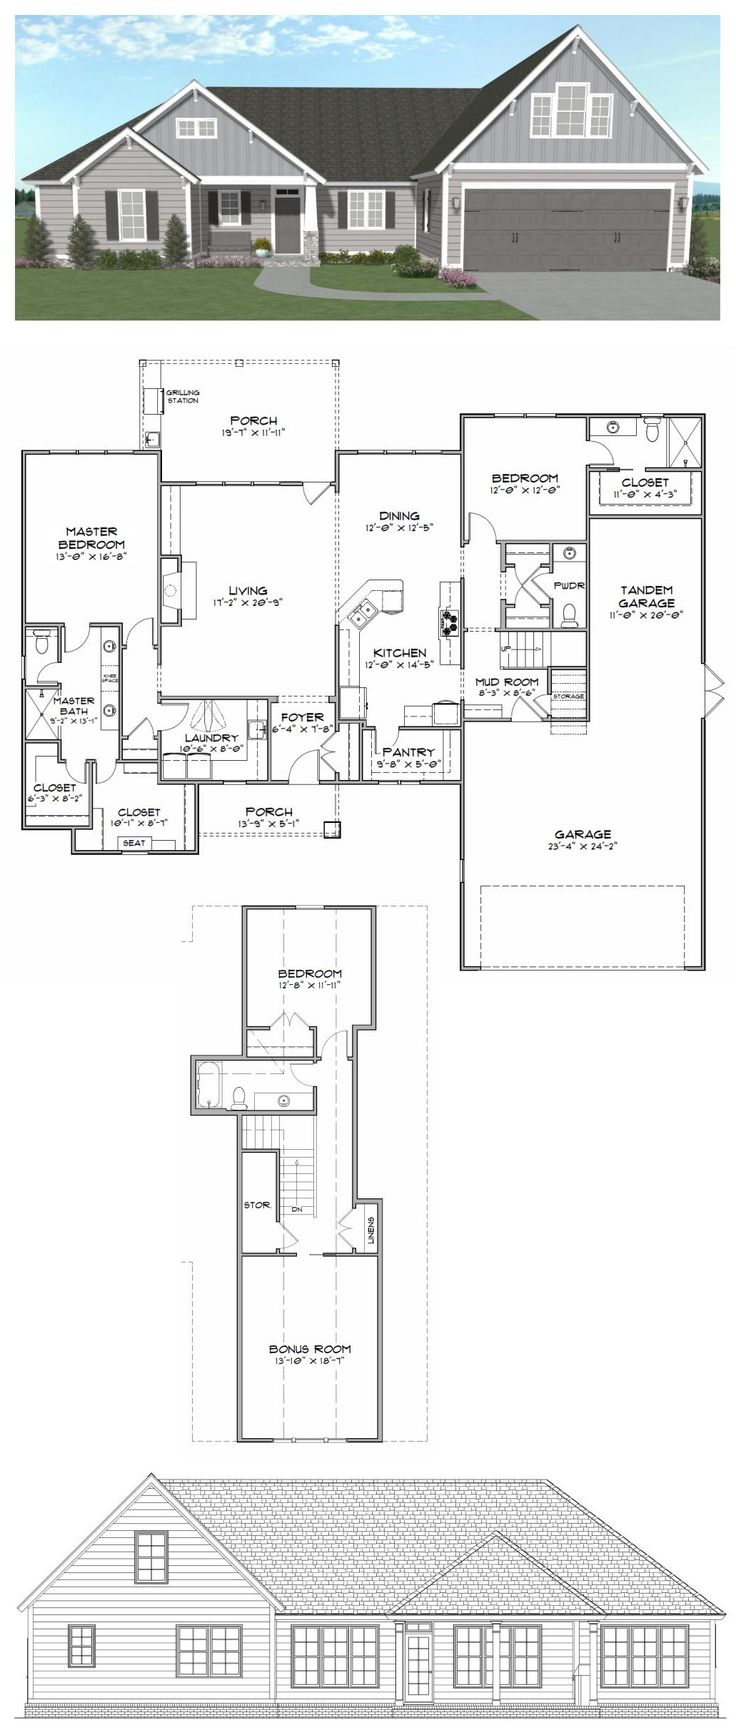 19 best house plans 2000 2800 sq ft images on pinterest for 2000 square ft house plans